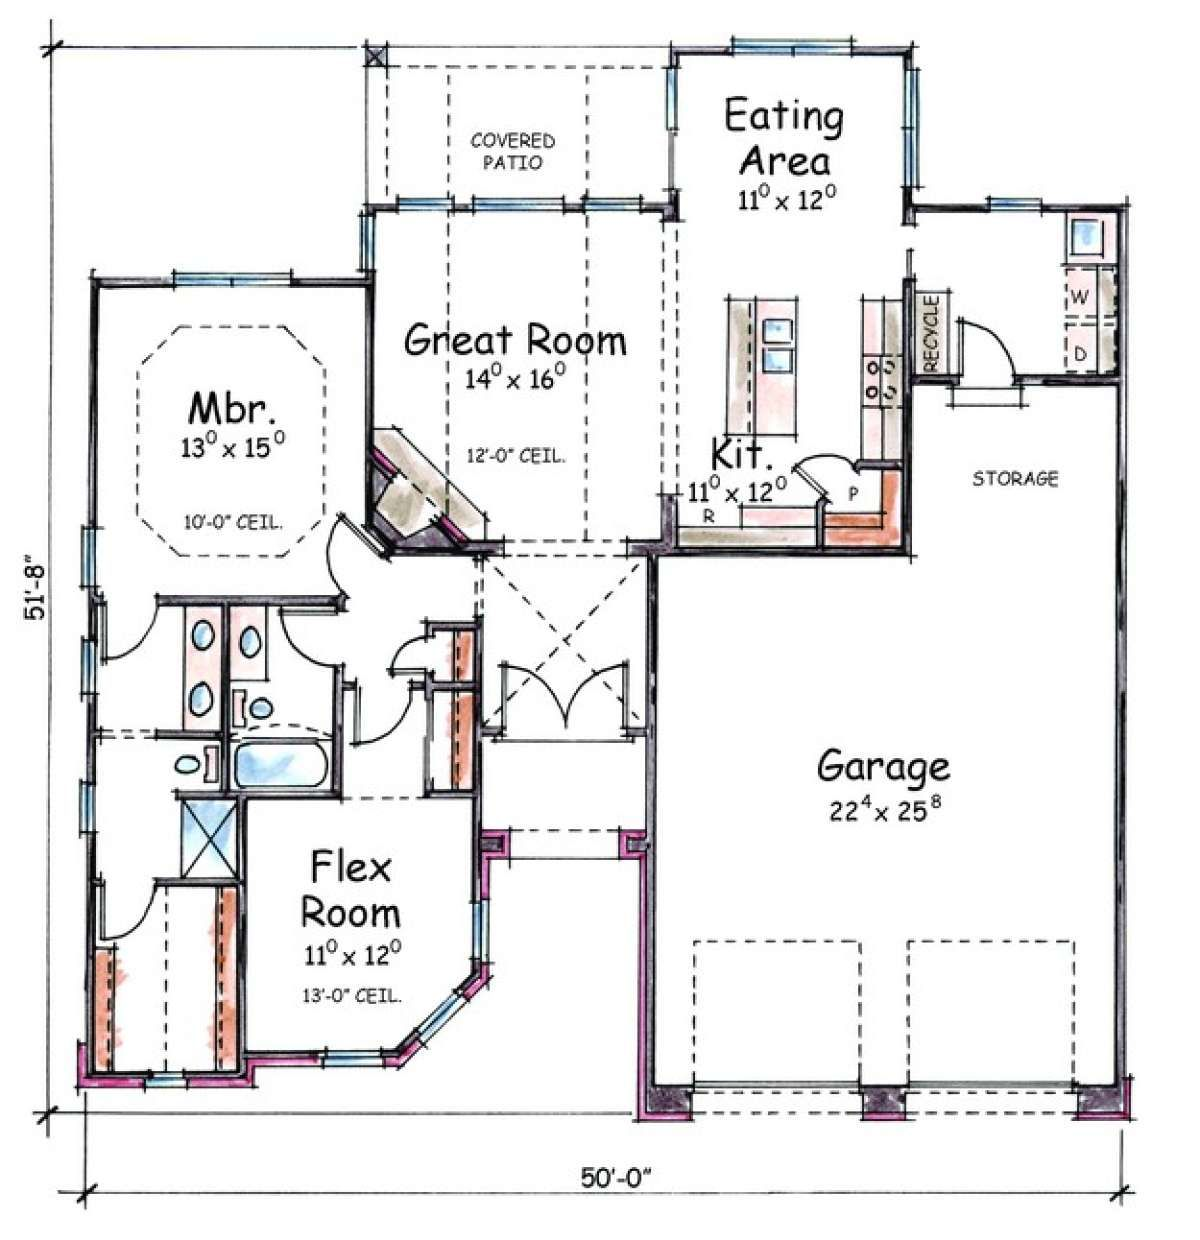 House Plan 402 01064 European Plan 1 339 Square Feet 2 Bedrooms 1 Bathroom In 2020 House Plans House Floor Plans Bungalow Design